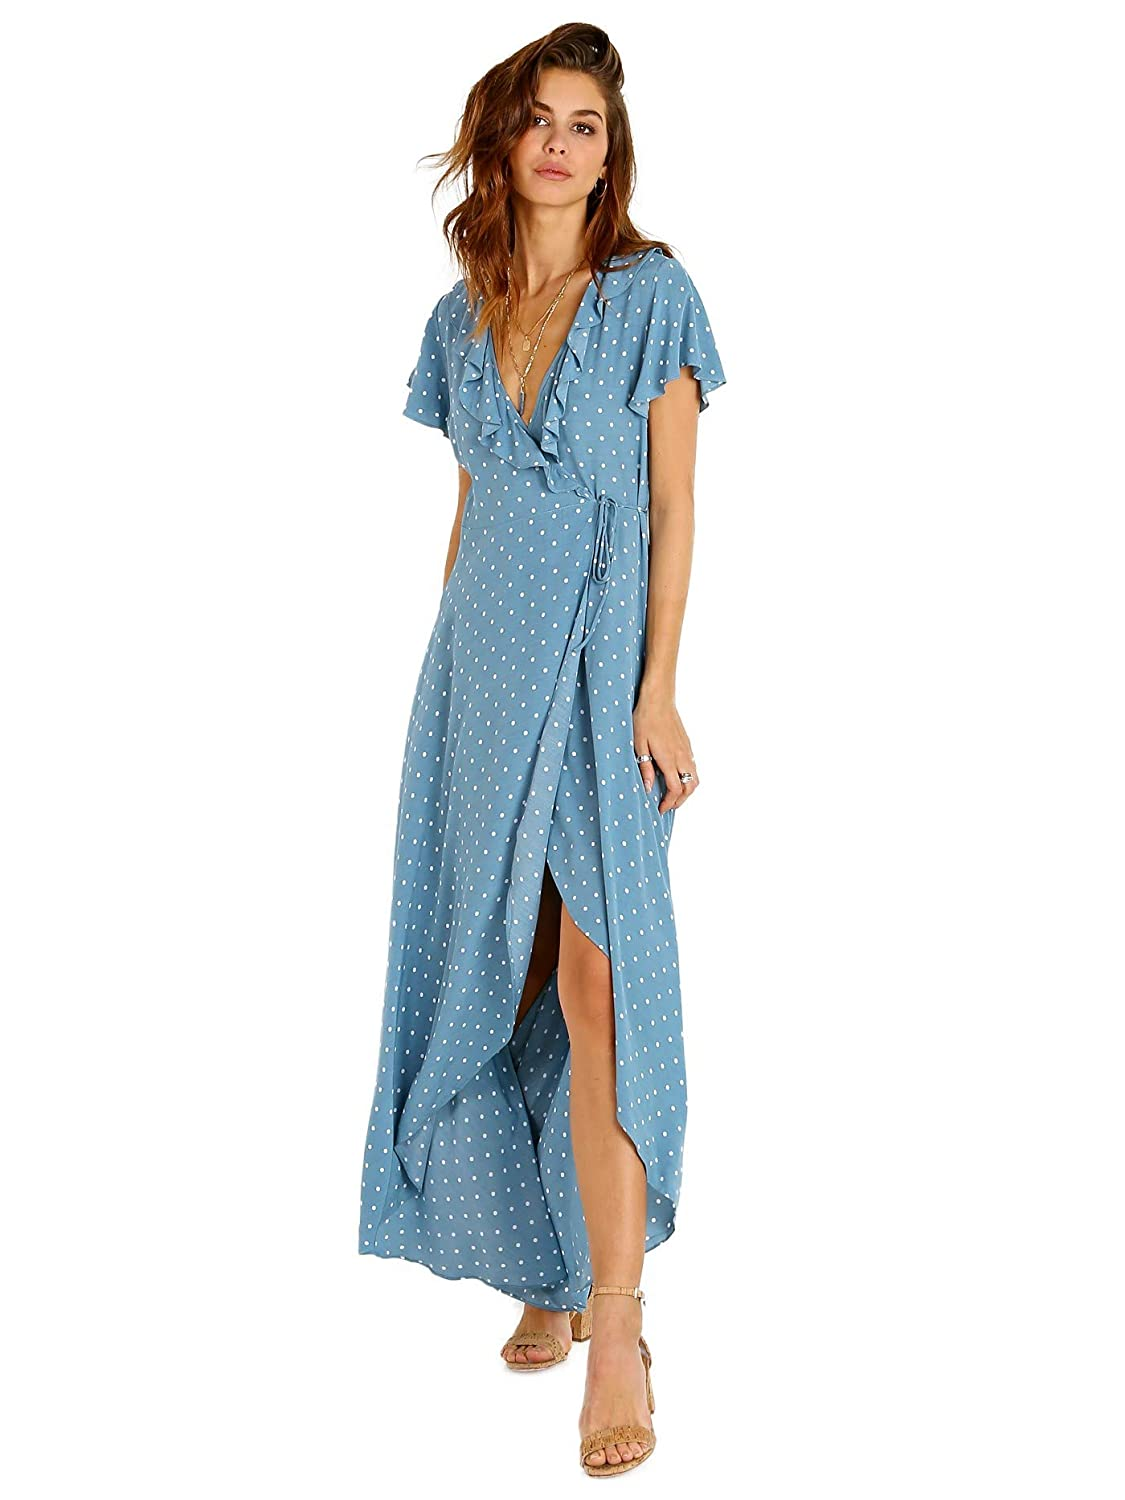 d1e877b342 Auguste the Label Polly Frill Neck Wrap Maxi Dress Blue at Amazon Women's  Clothing store: